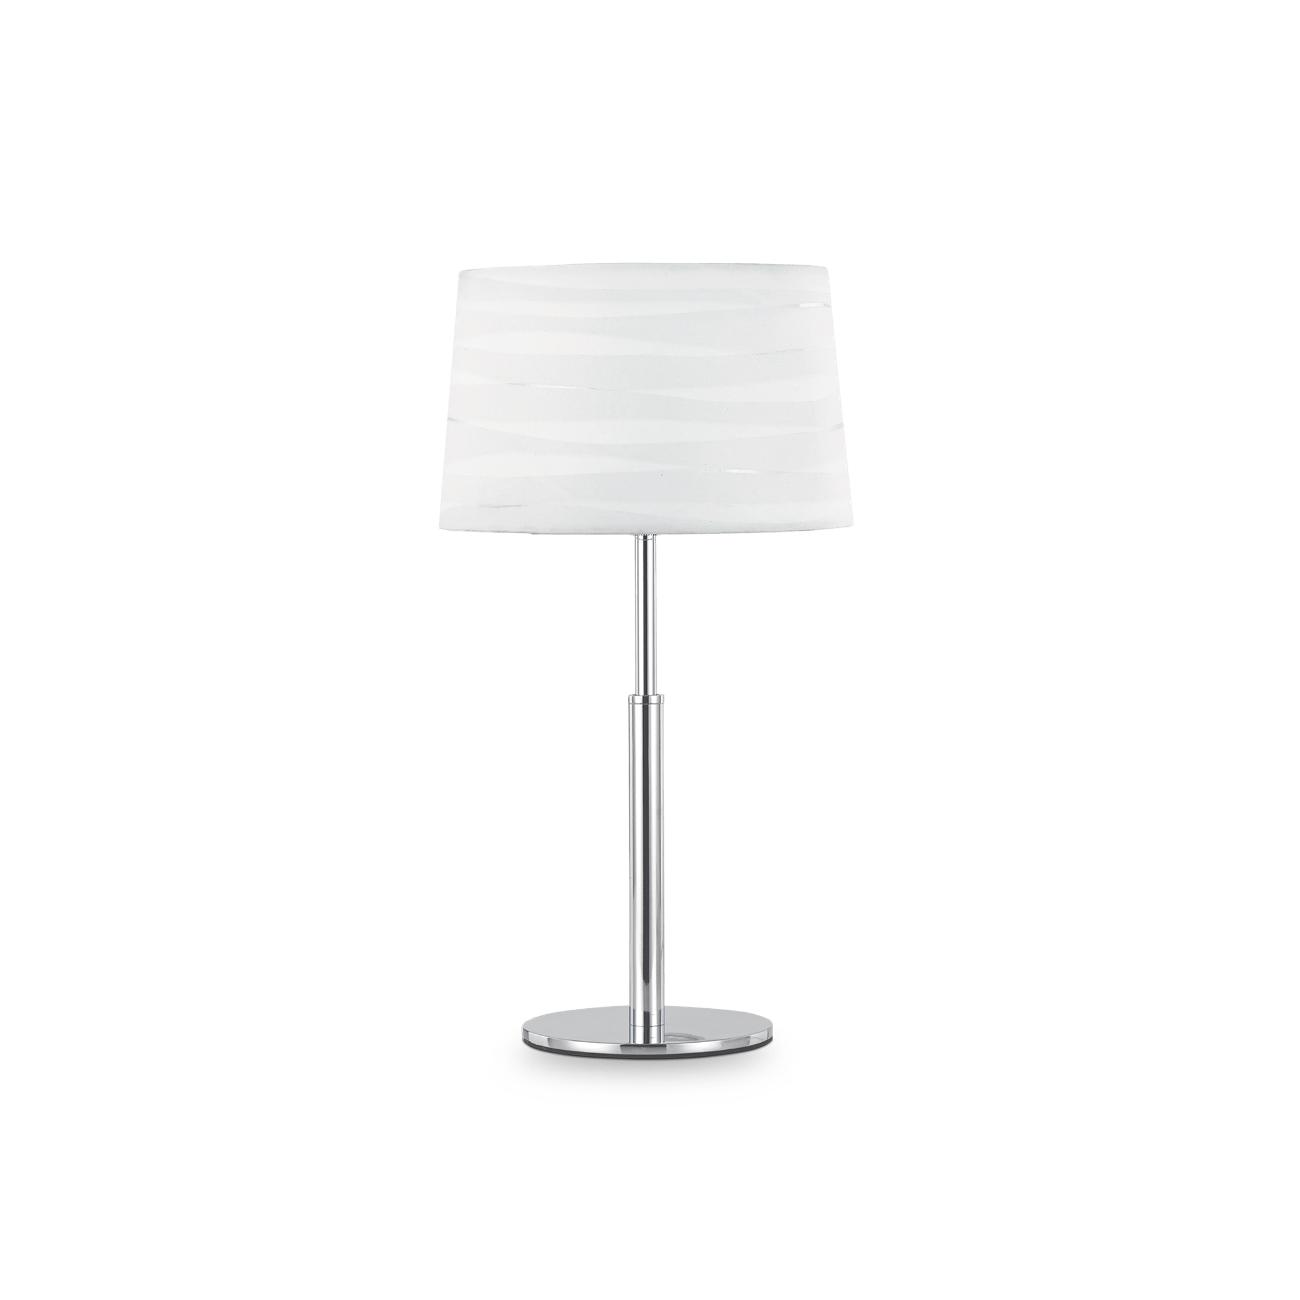 Stolní lampa Ideal LUX Isa TL1